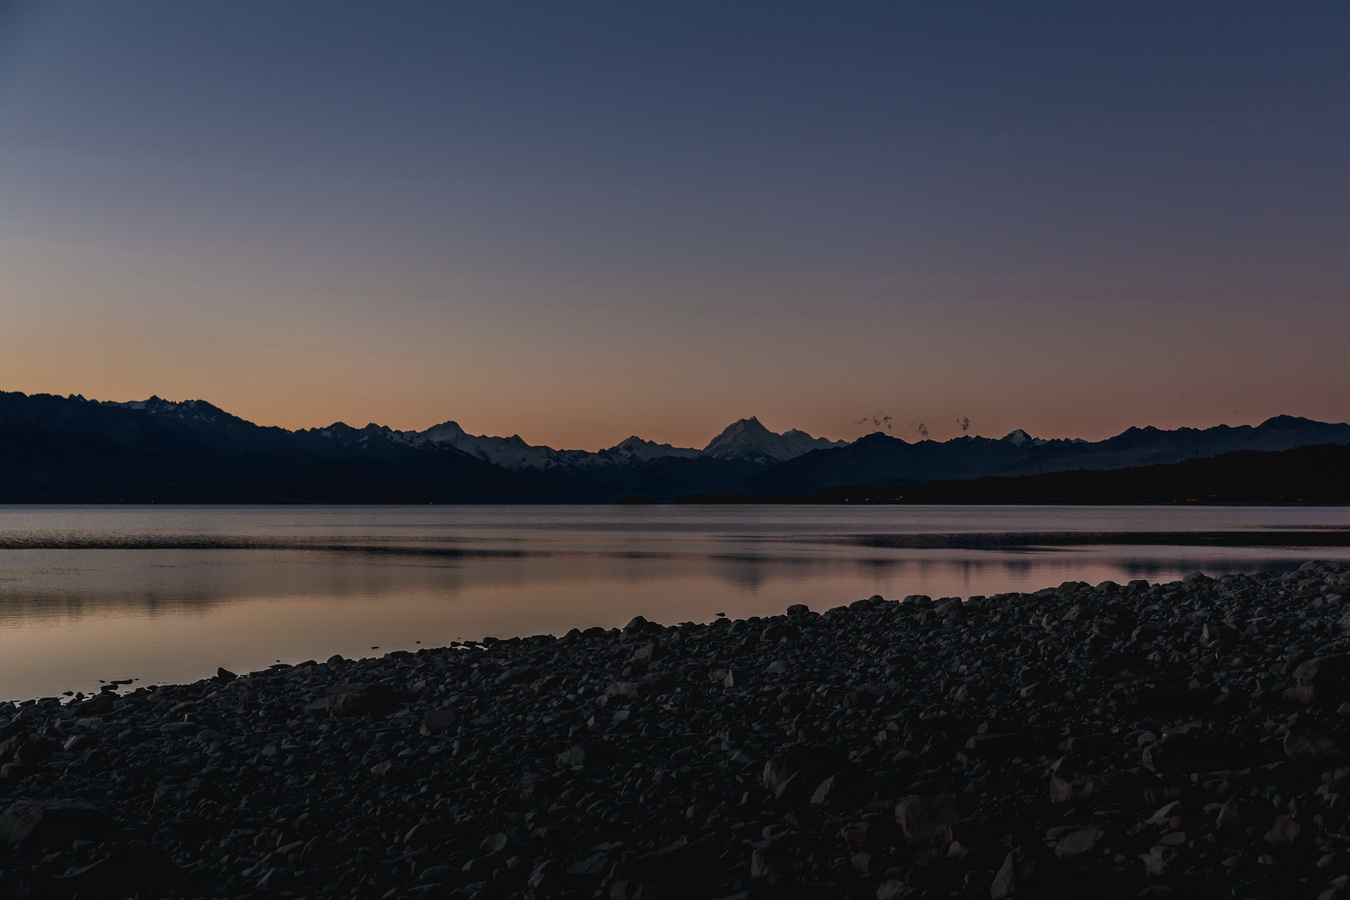 sunset, Lake Pukaki,Mount Cook,Aoraki,South Alps, Mount Cook National Park, South Island ,New Zealand